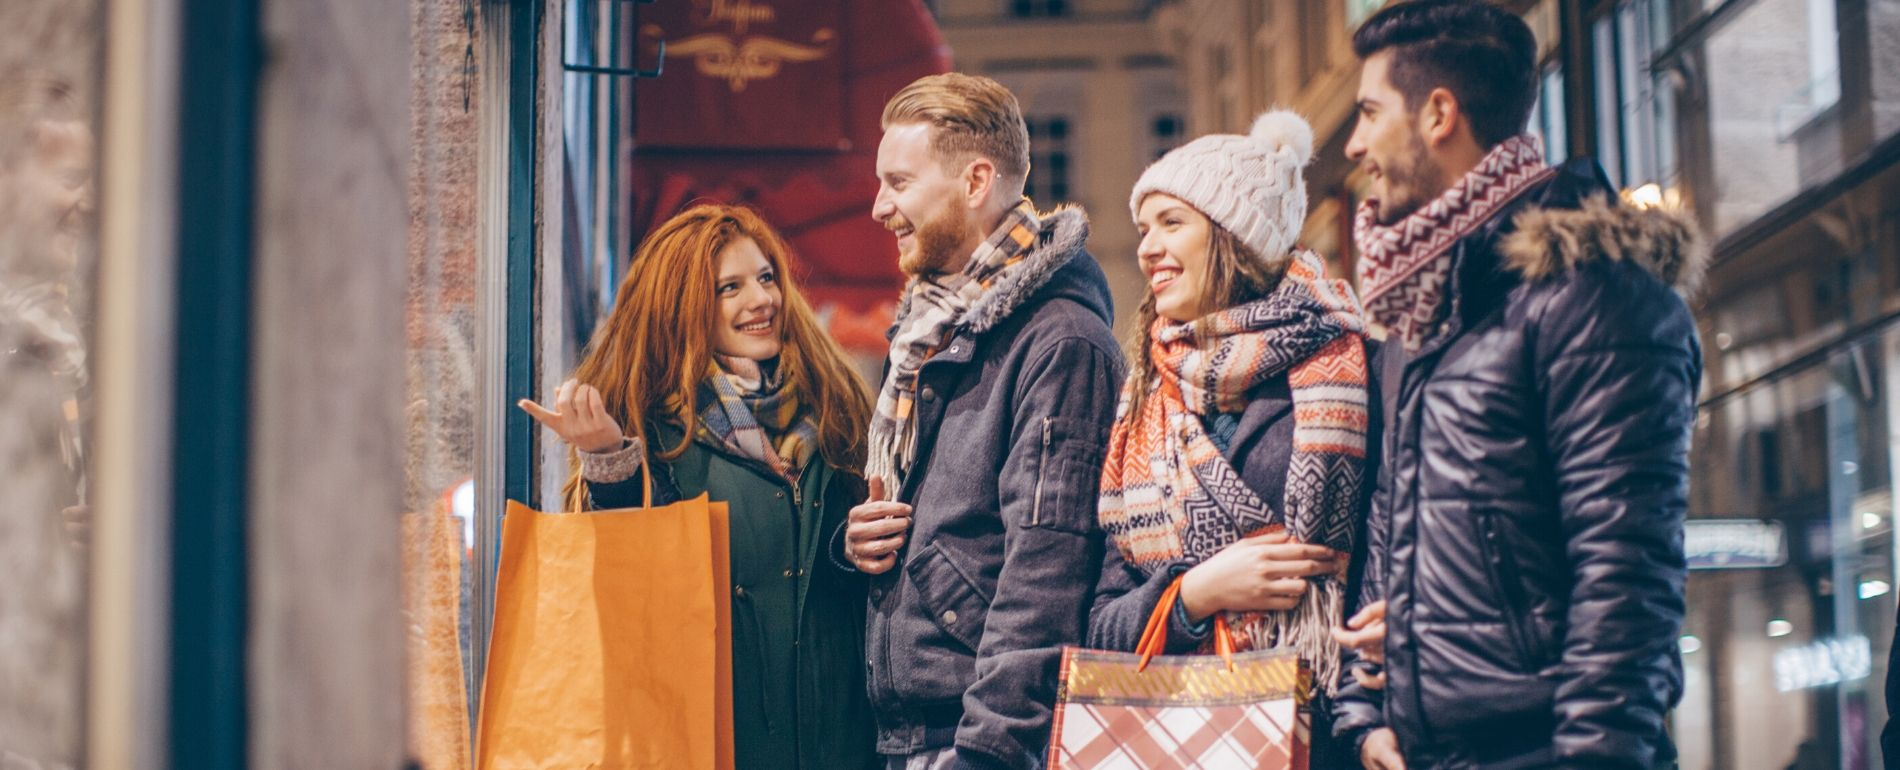 Here's How to Achieve a Successful Black Friday & Cyber Monday